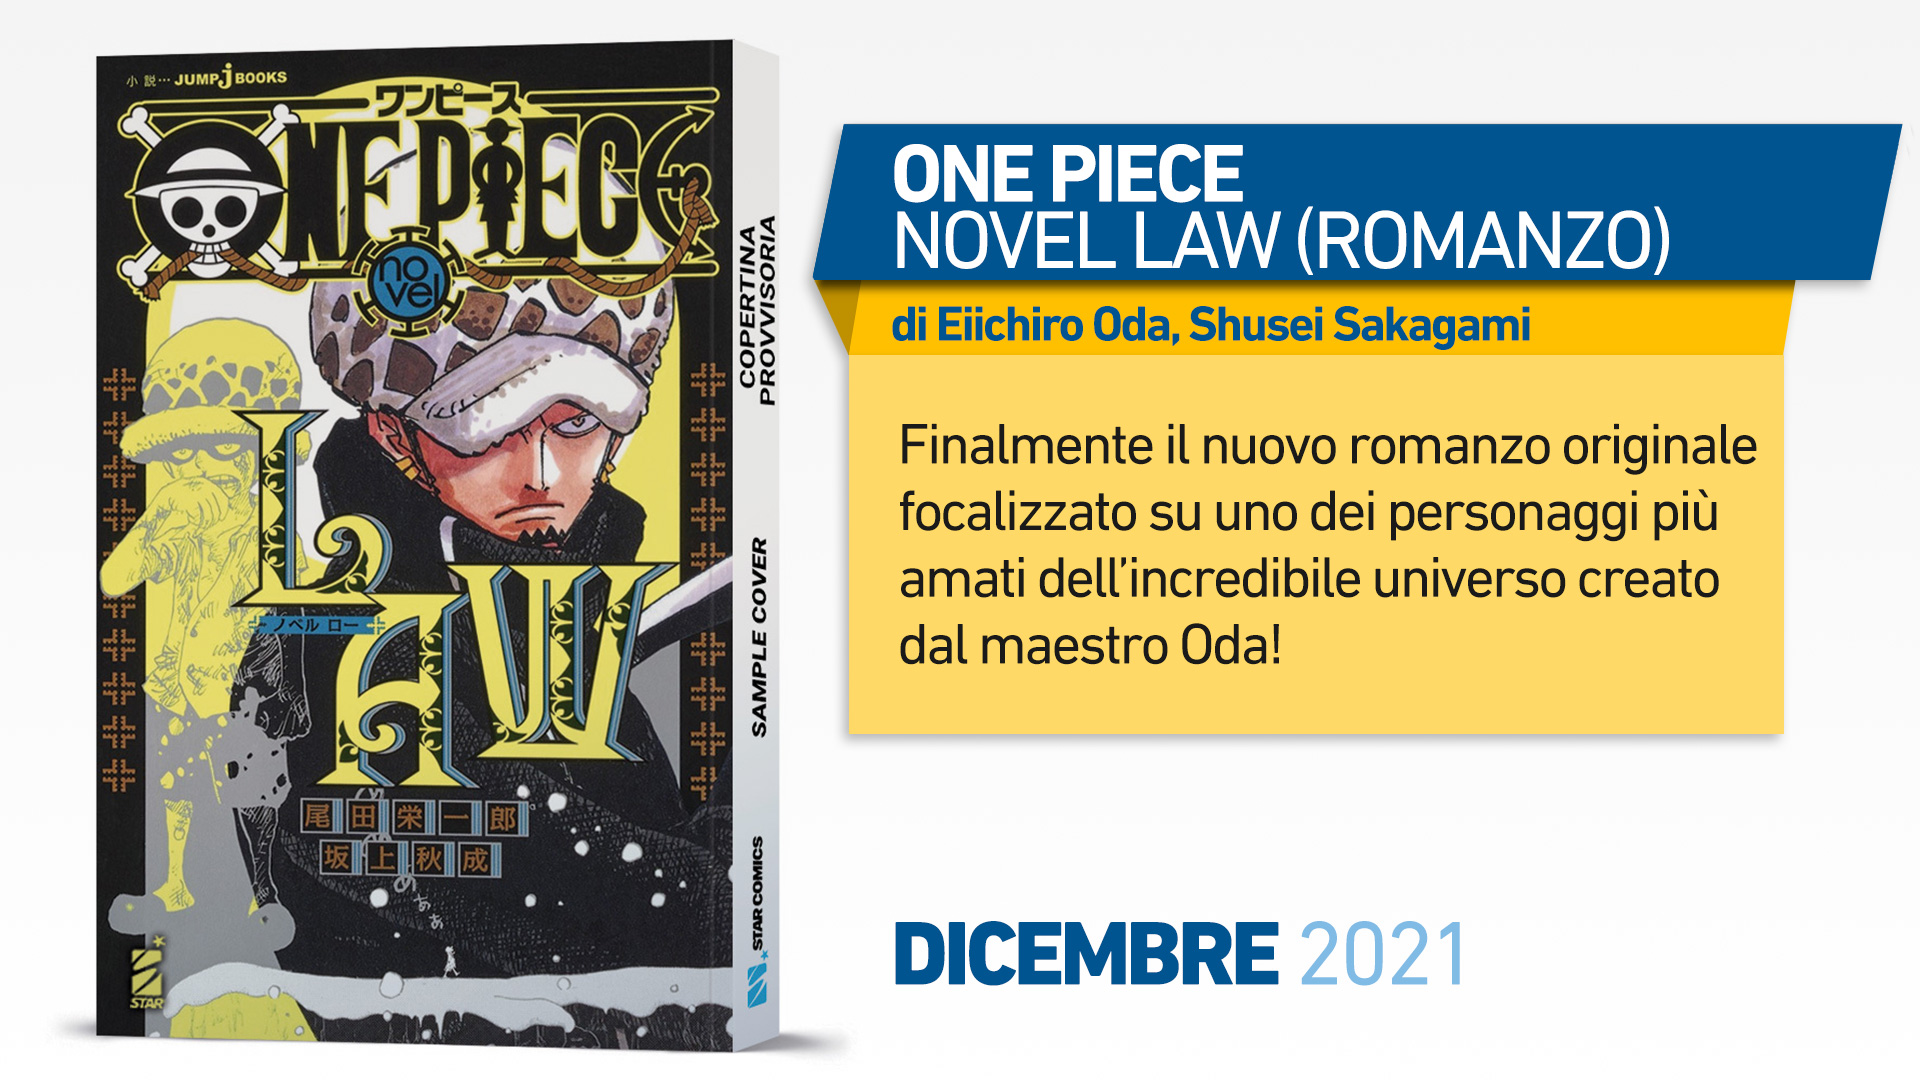 ONE PIECE NOVEL LAW (ROMANZO)